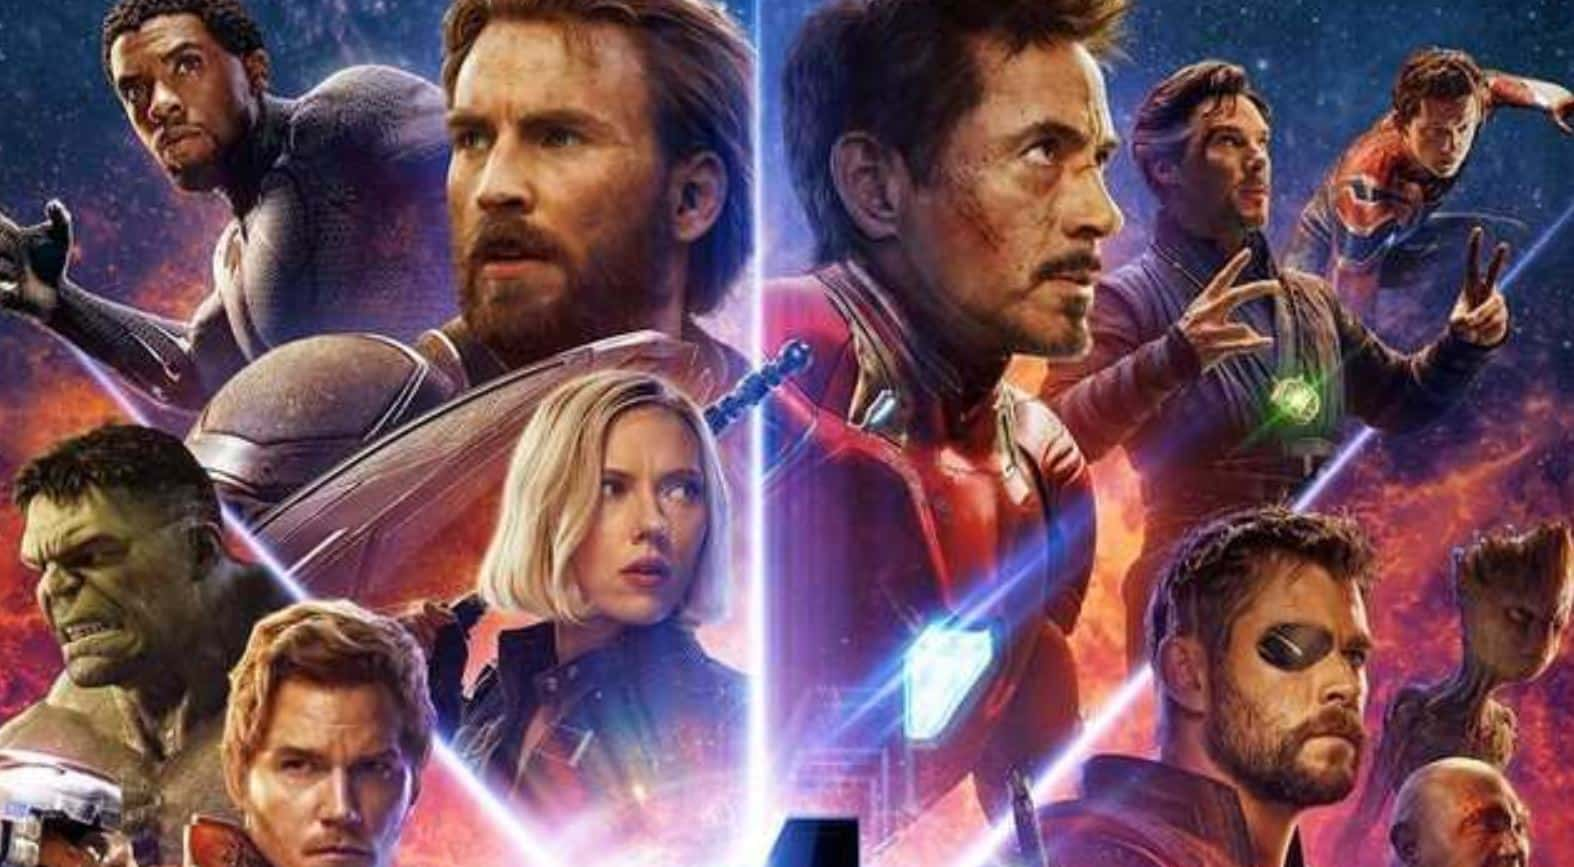 u0026 39 avengers 4 u0026 39  trailer release said to be coming very soon